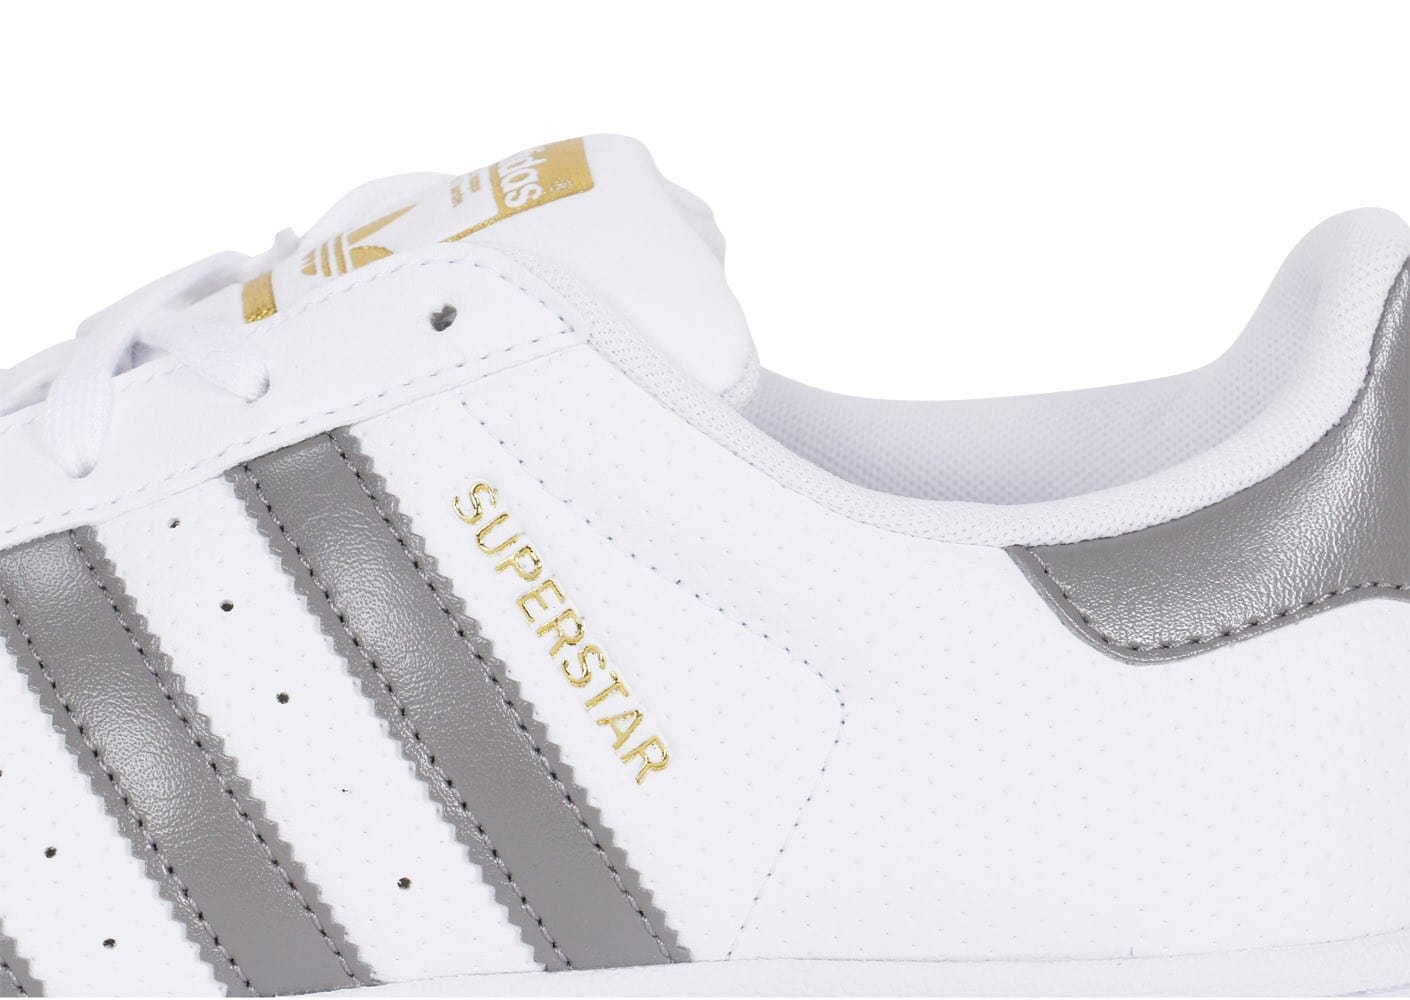 pretty nice 7349e 7036c ... Chaussures adidas Superstar Blanc Gris Et Or vue dessus